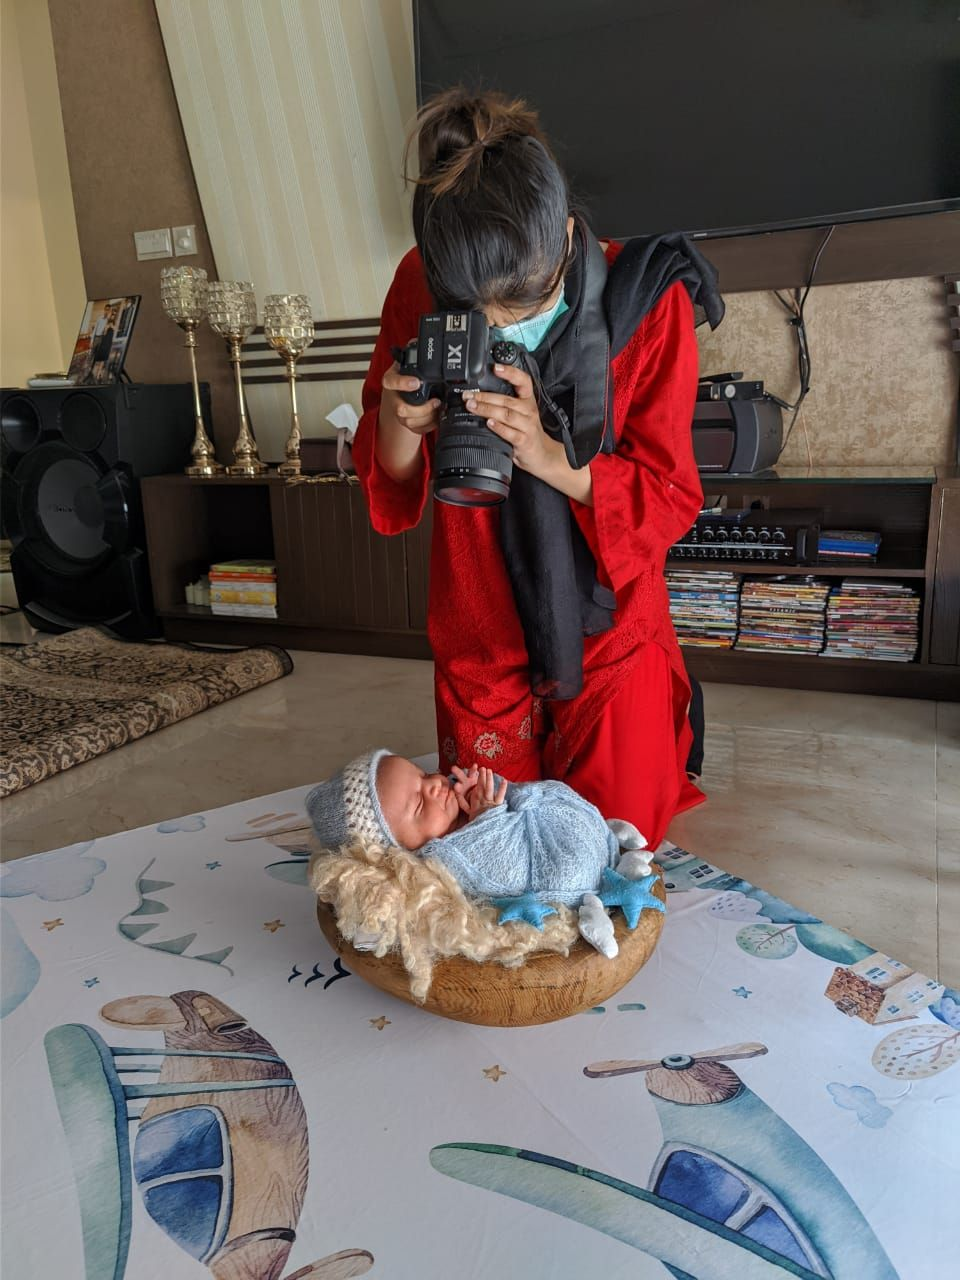 Newborn Photographer Annem Zaidi taking photos of newborn baby